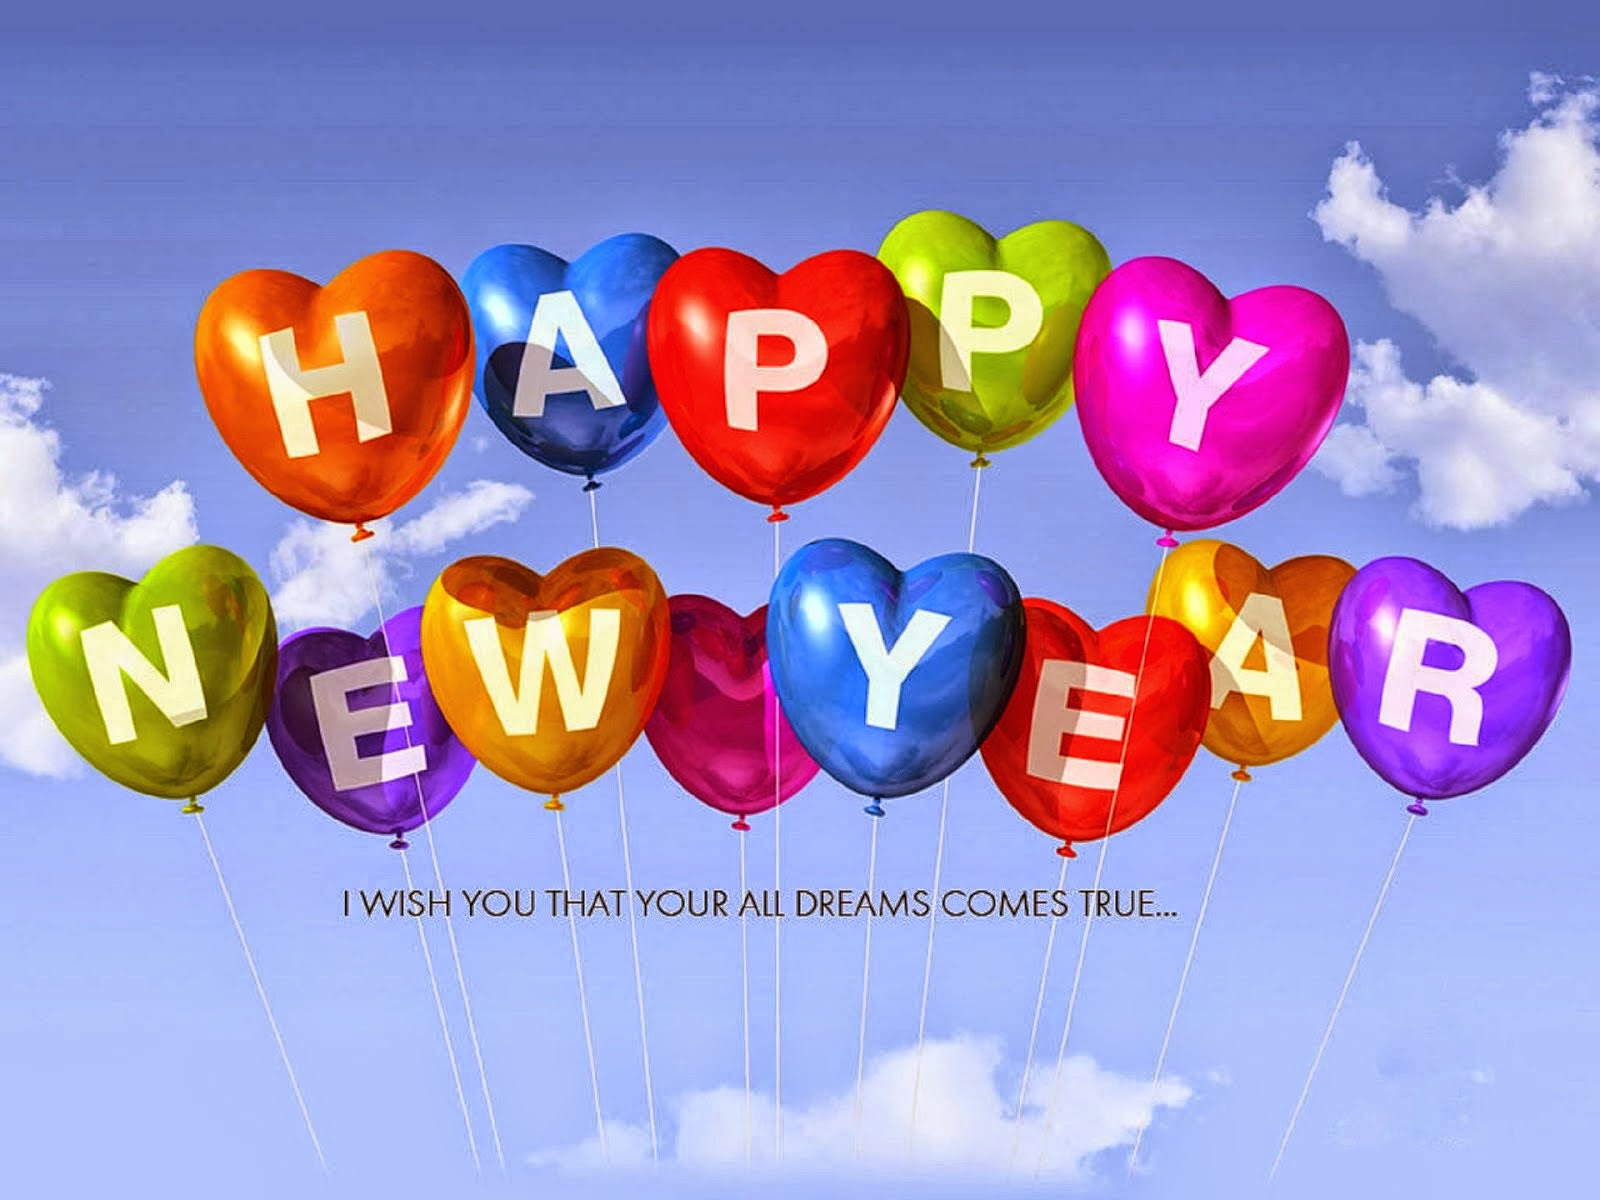 2020 Happy New Year Hd Wallpapers Images Free Download Techicy